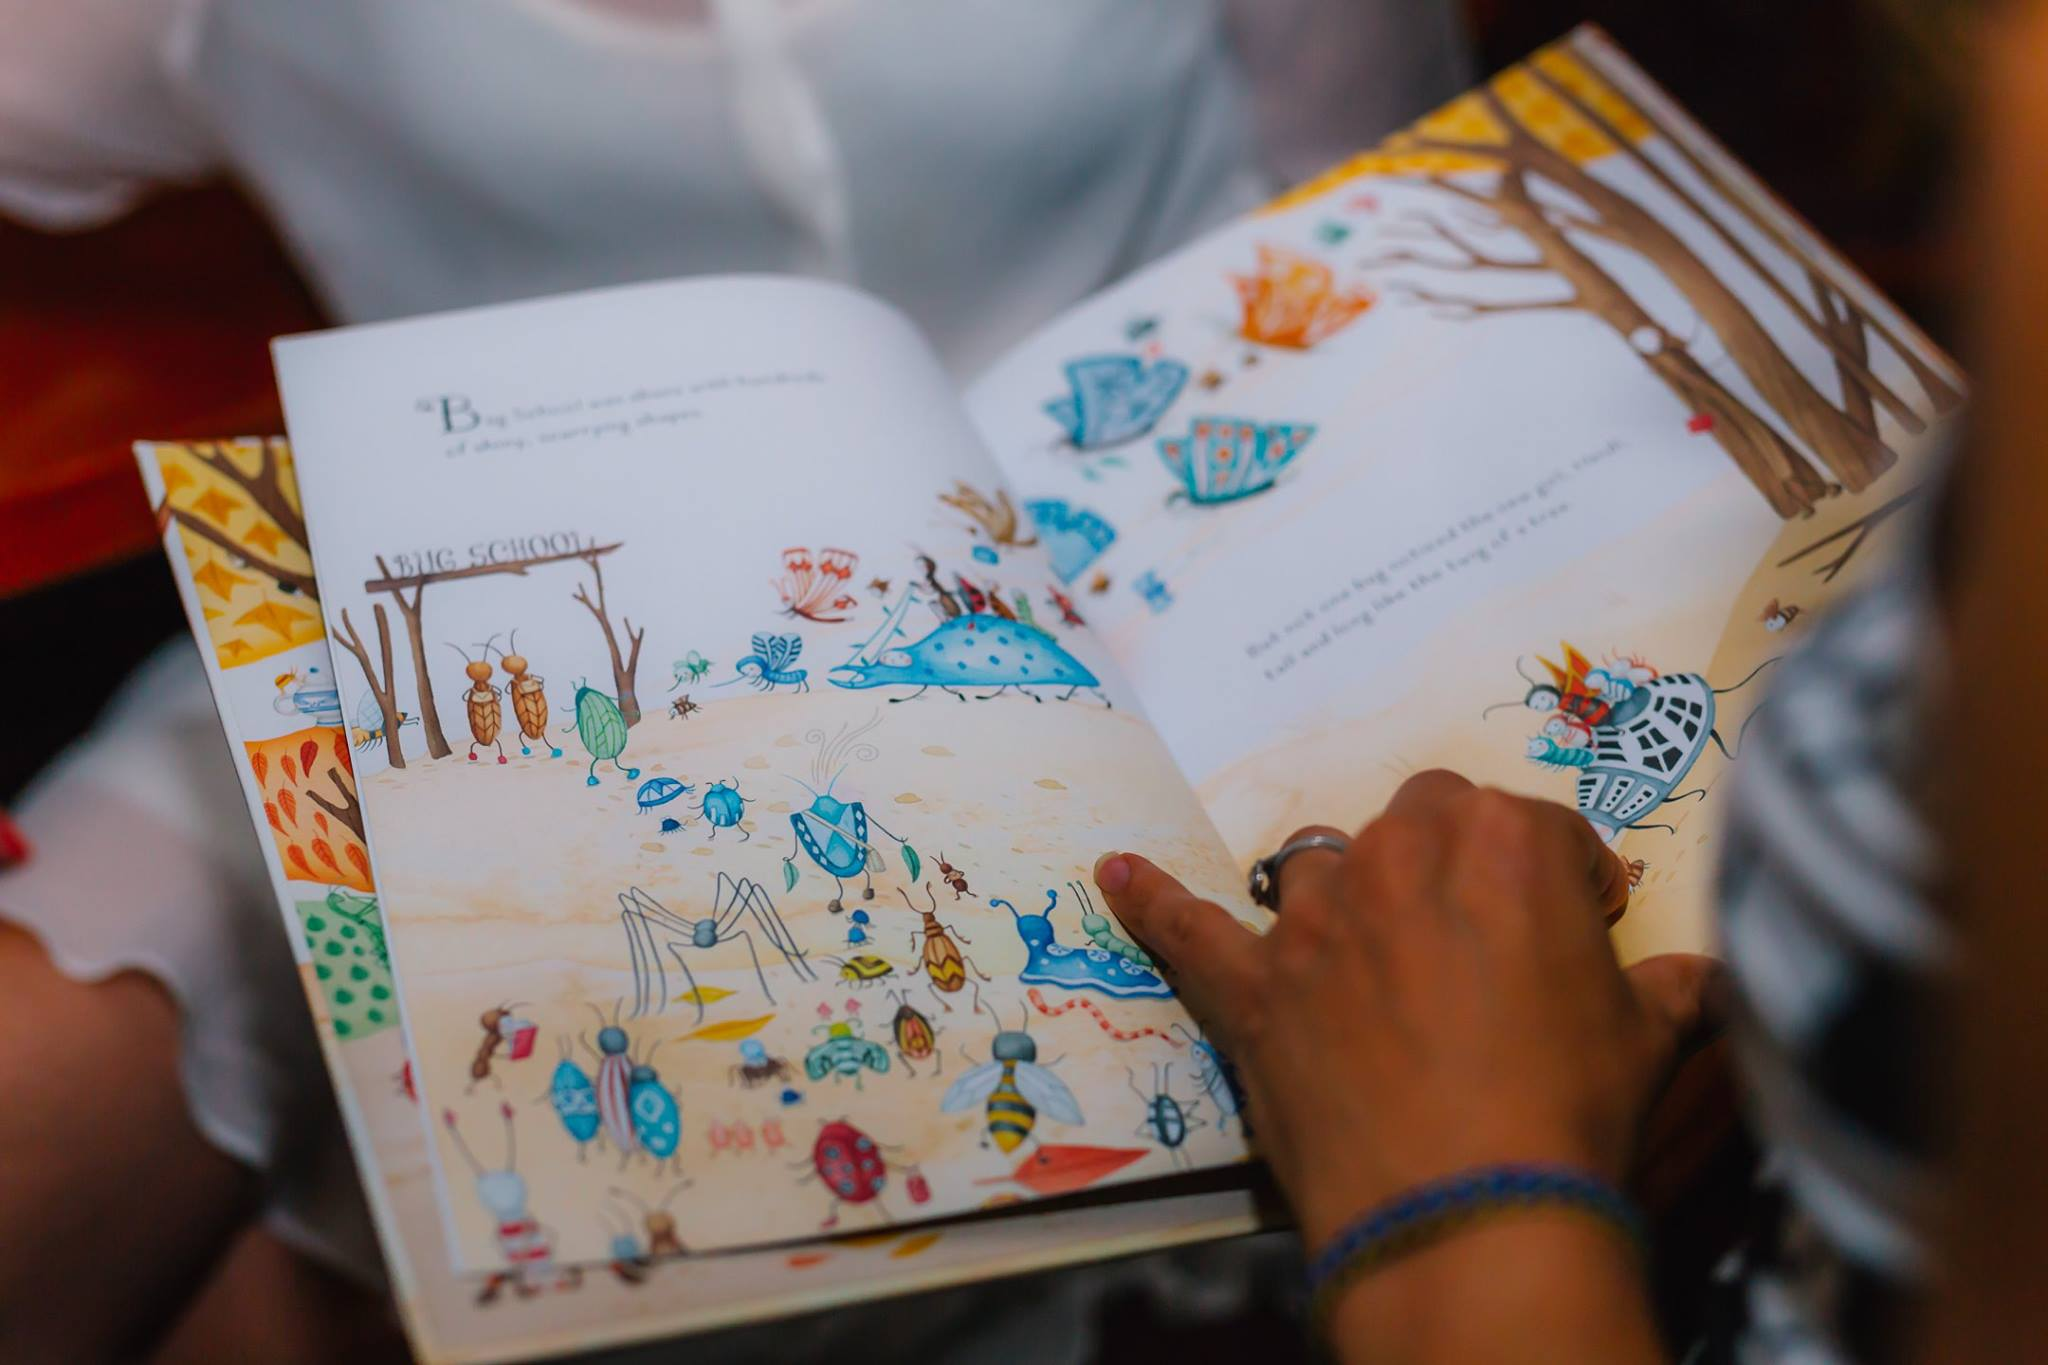 Inside 'Twig', children's book created by Aura Parker, illustrator, designer and children's book author of 'Twig'. Also our next Creative Mama Evening Talk presenter on Tuesday 4 April!